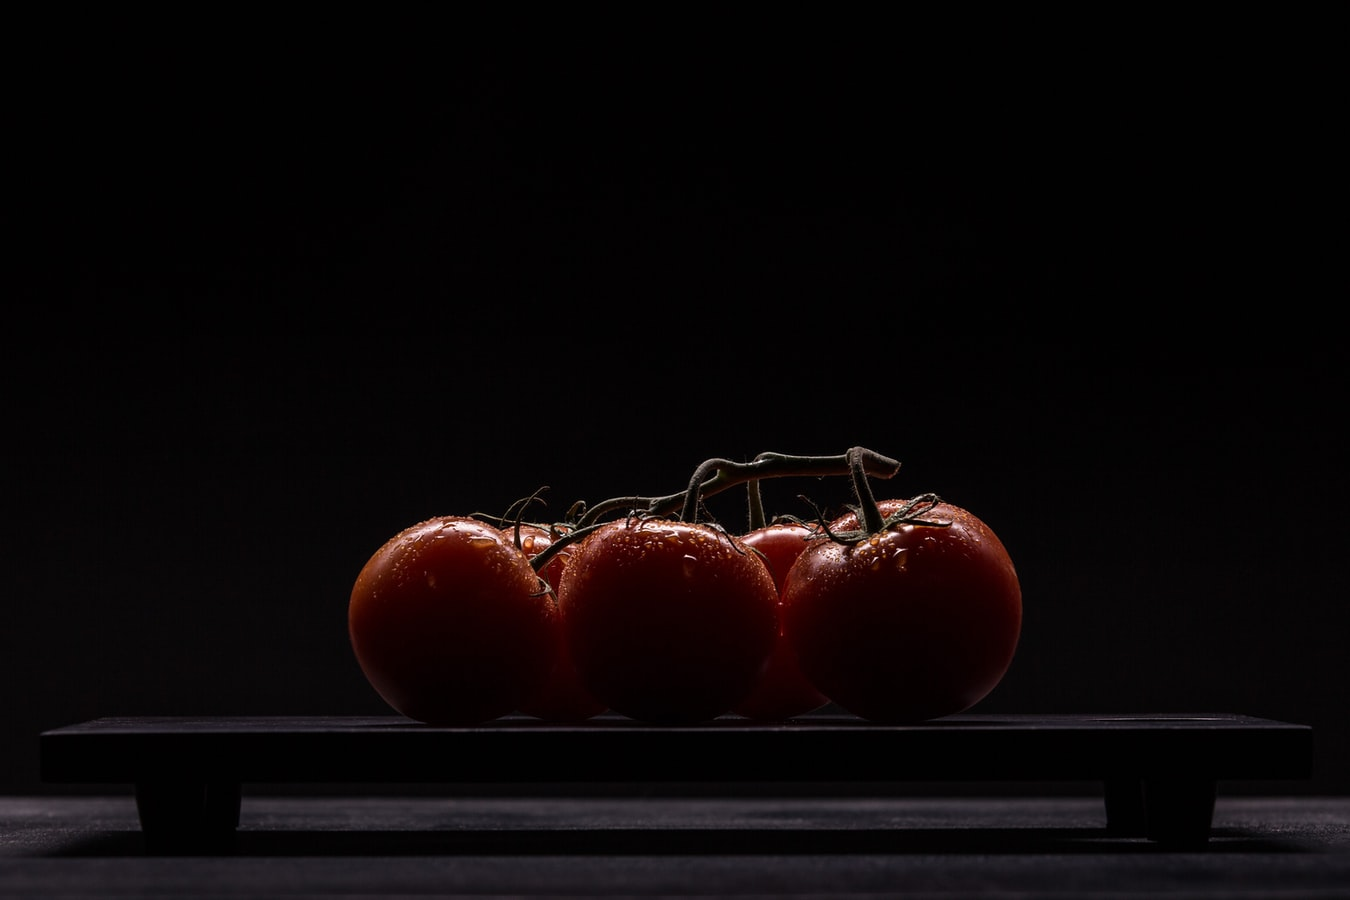 Suspicious-looking tomatoes